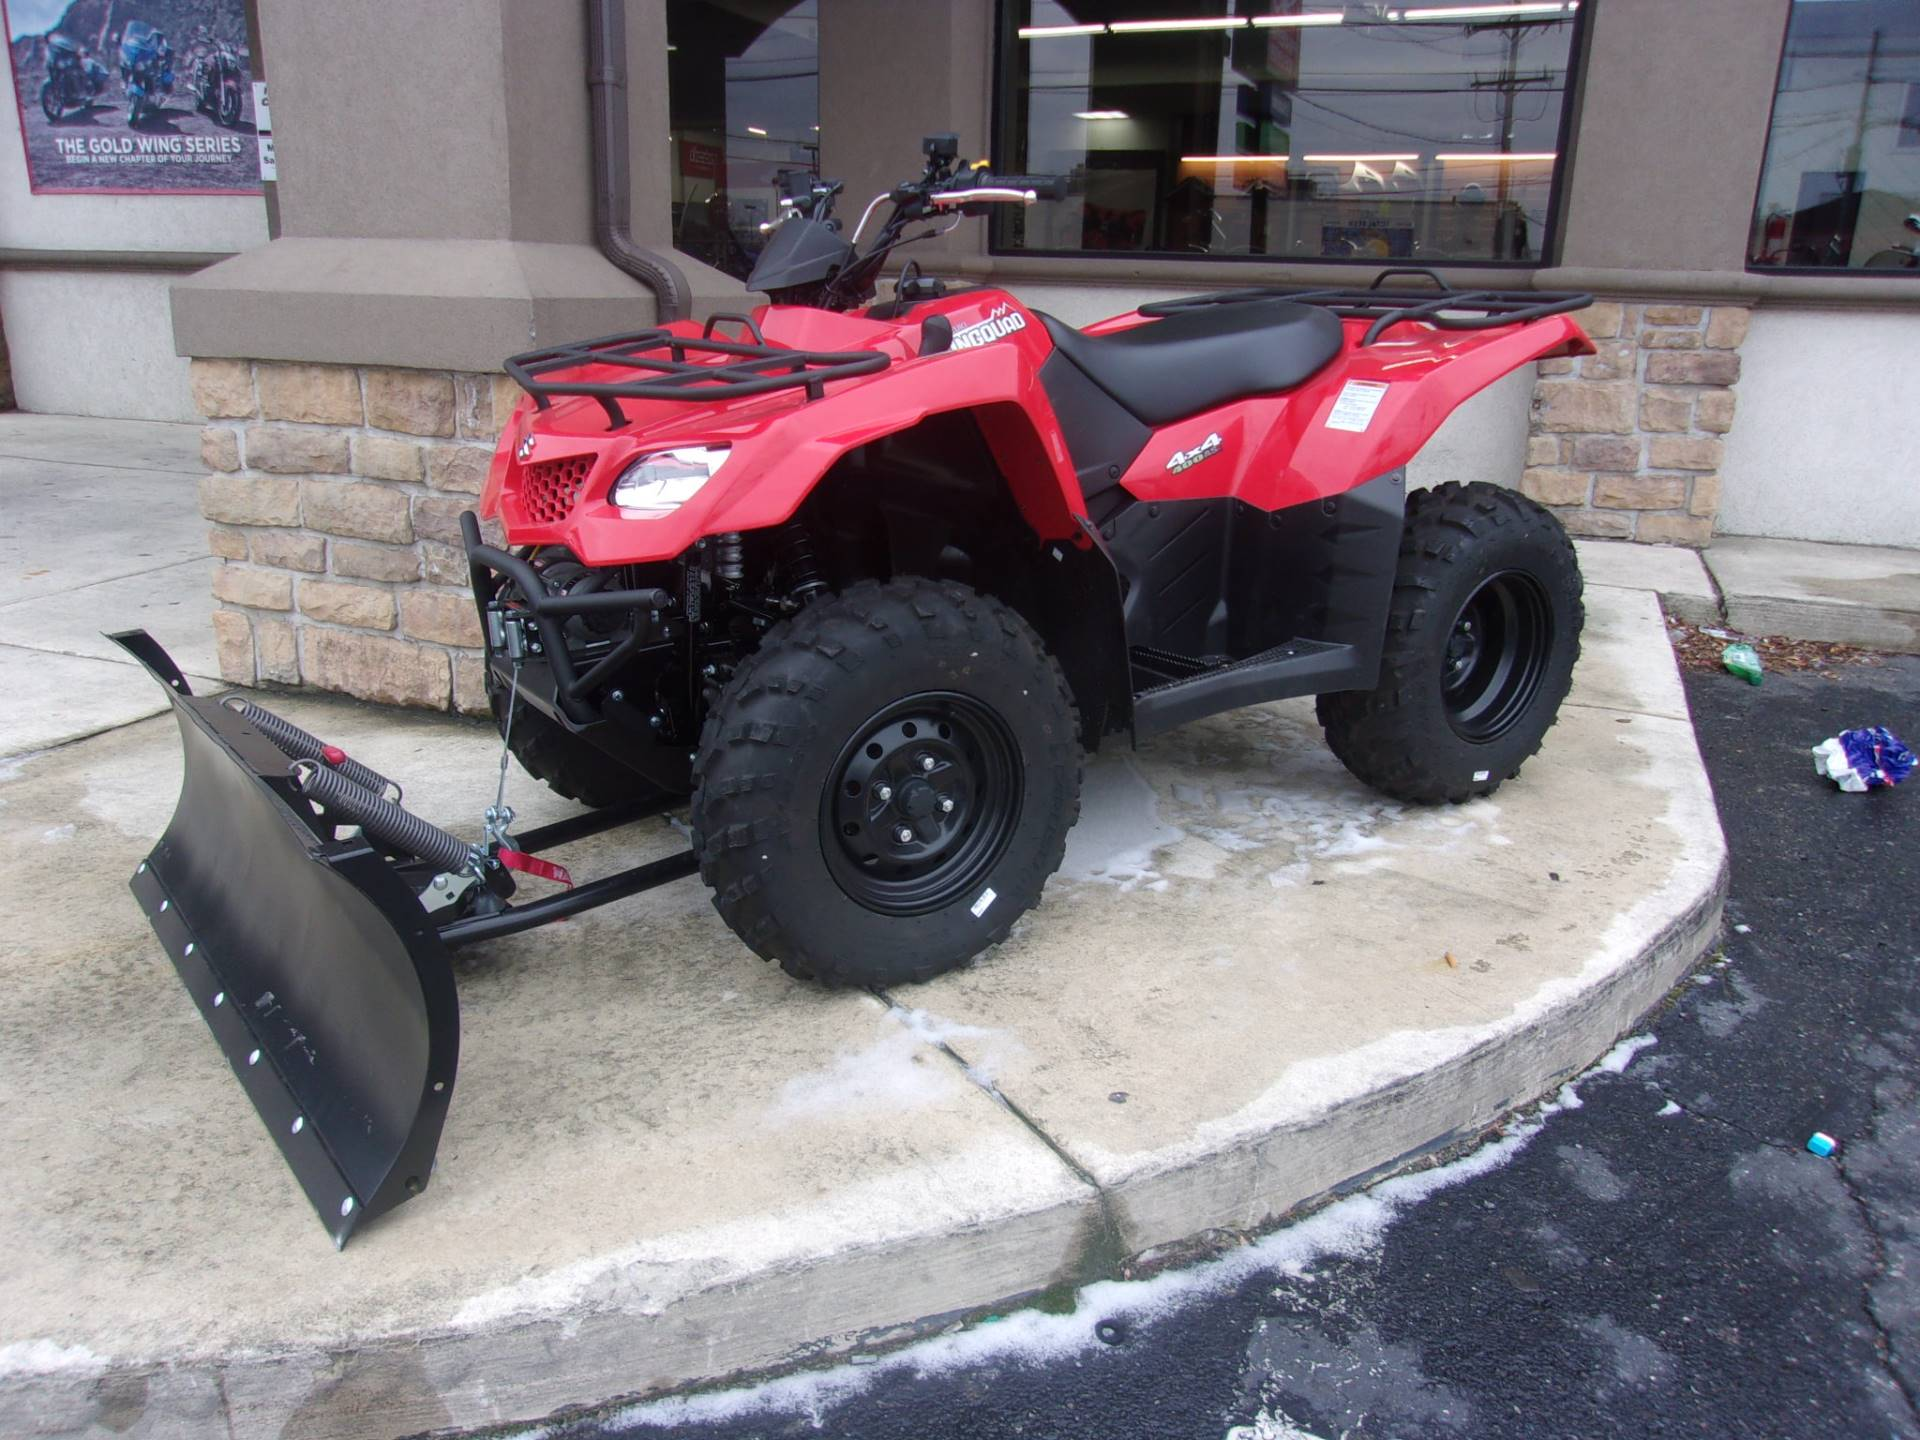 2018 Suzuki KingQuad 400ASi in Philadelphia, Pennsylvania - Photo 2